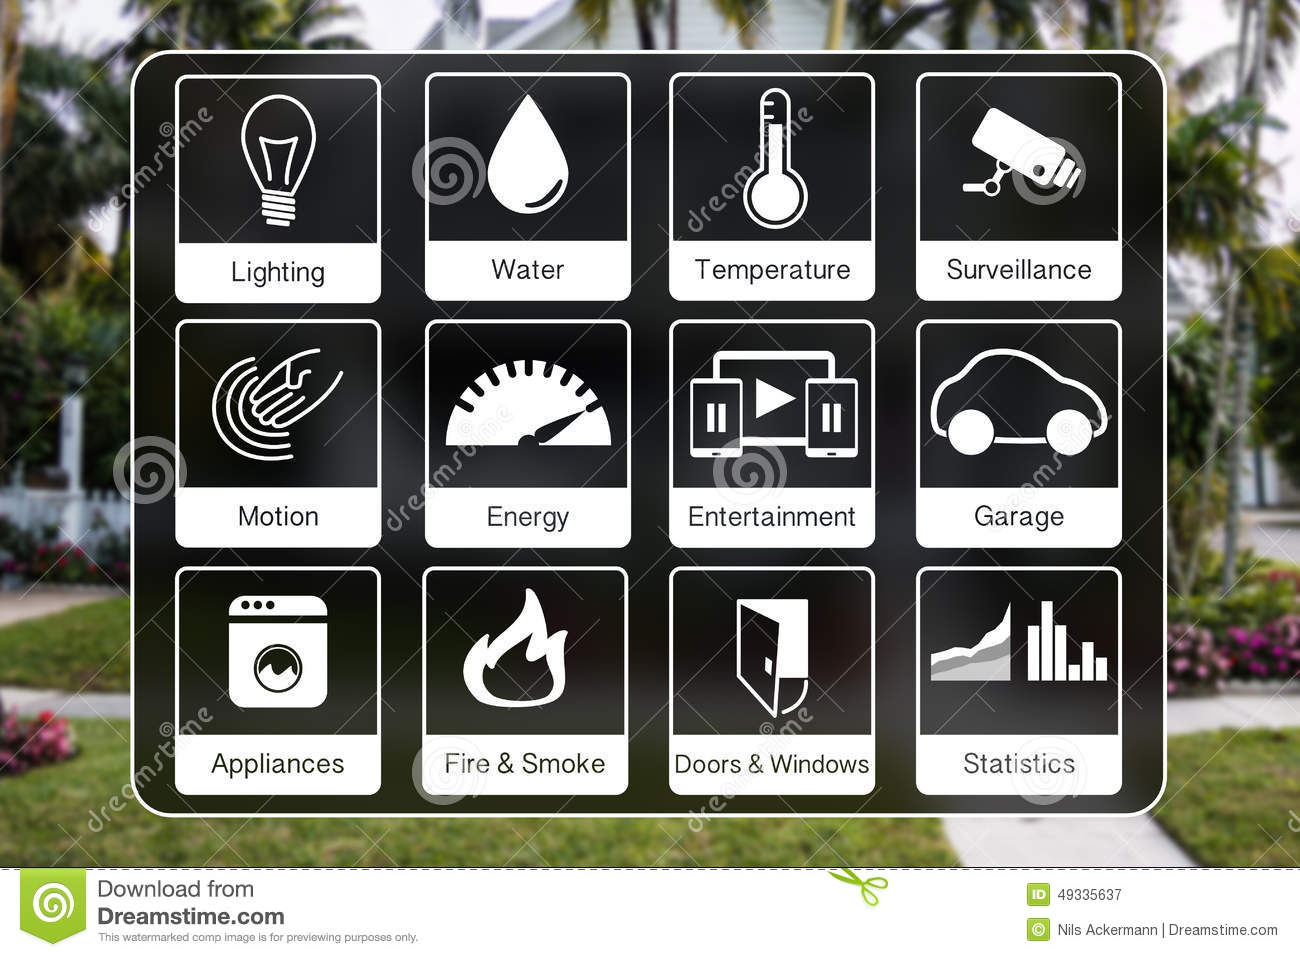 Garage door prices - Home Automation Icons To Control A Smart Home Like Light